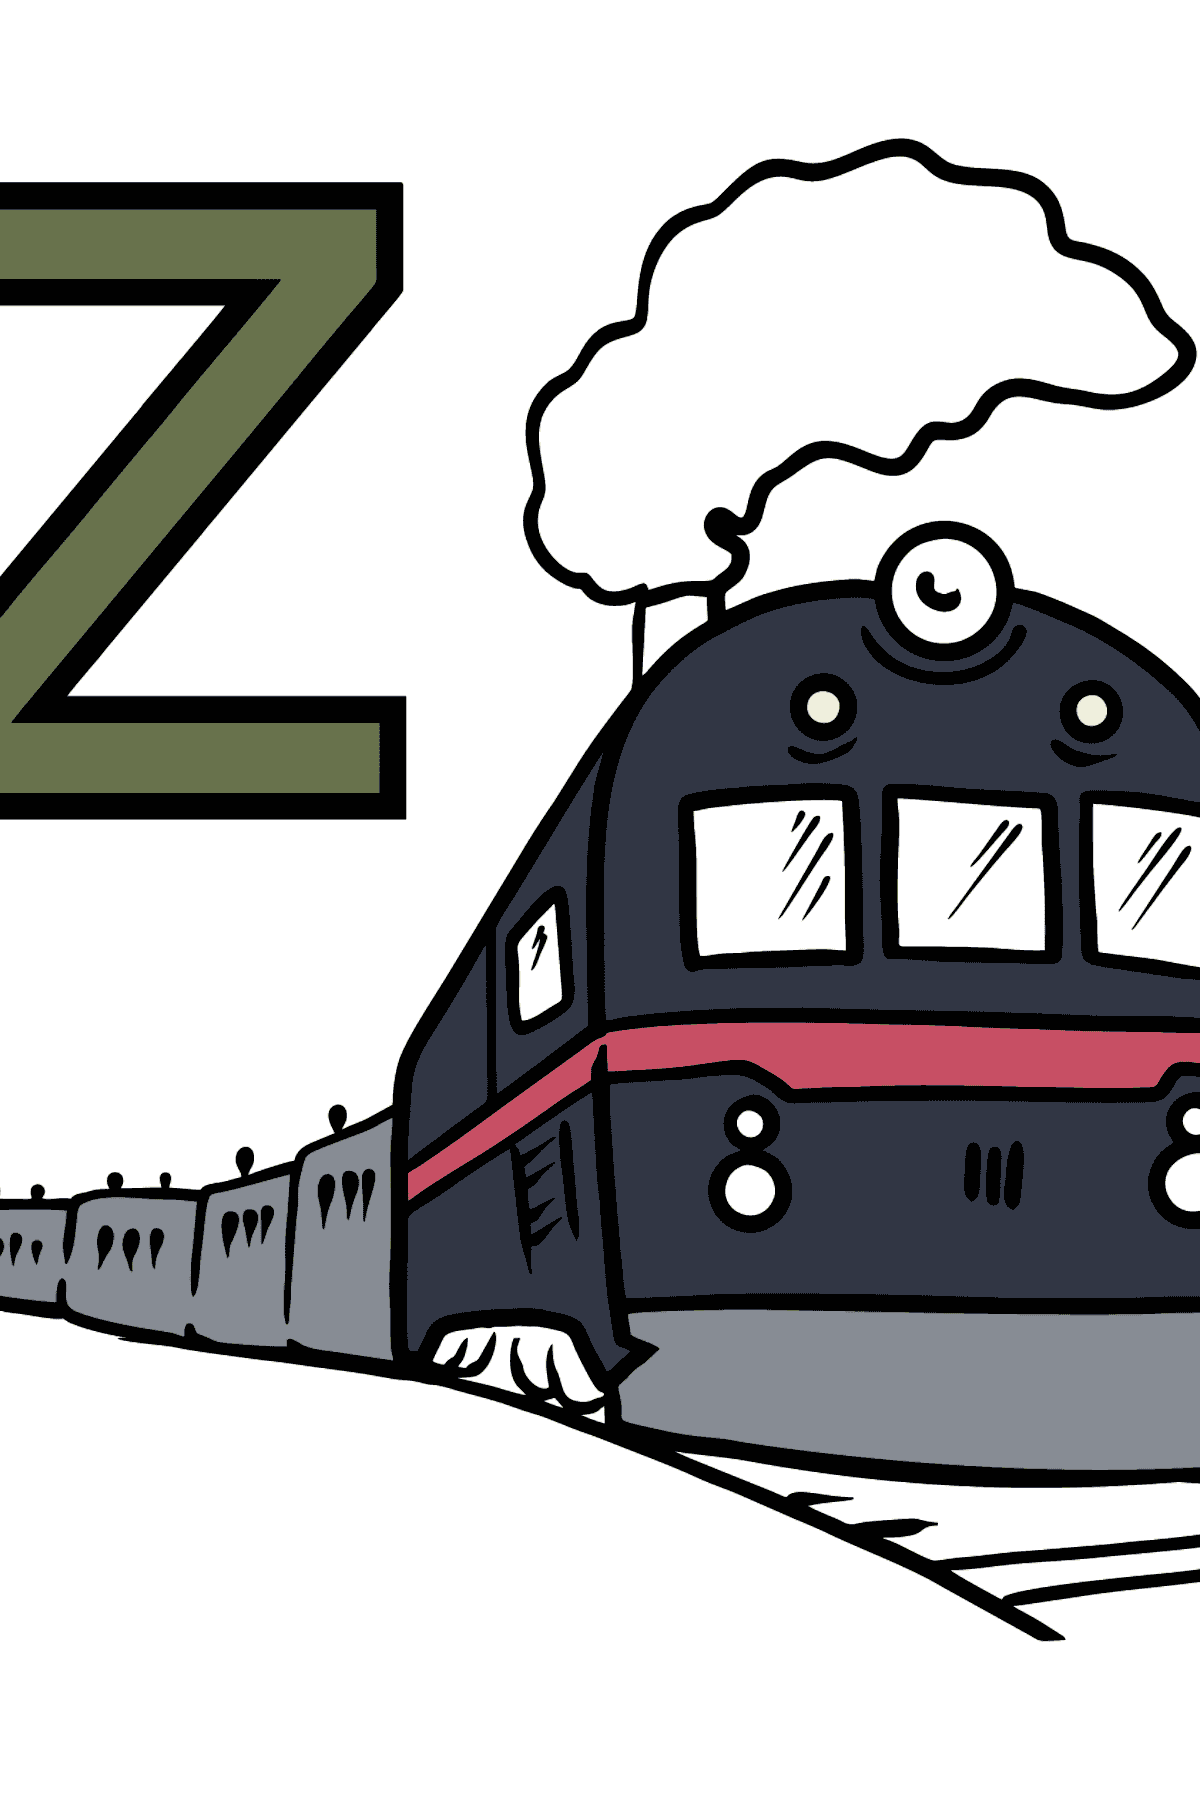 German Letter Z coloring pages - ZUG - Coloring Pages for Kids